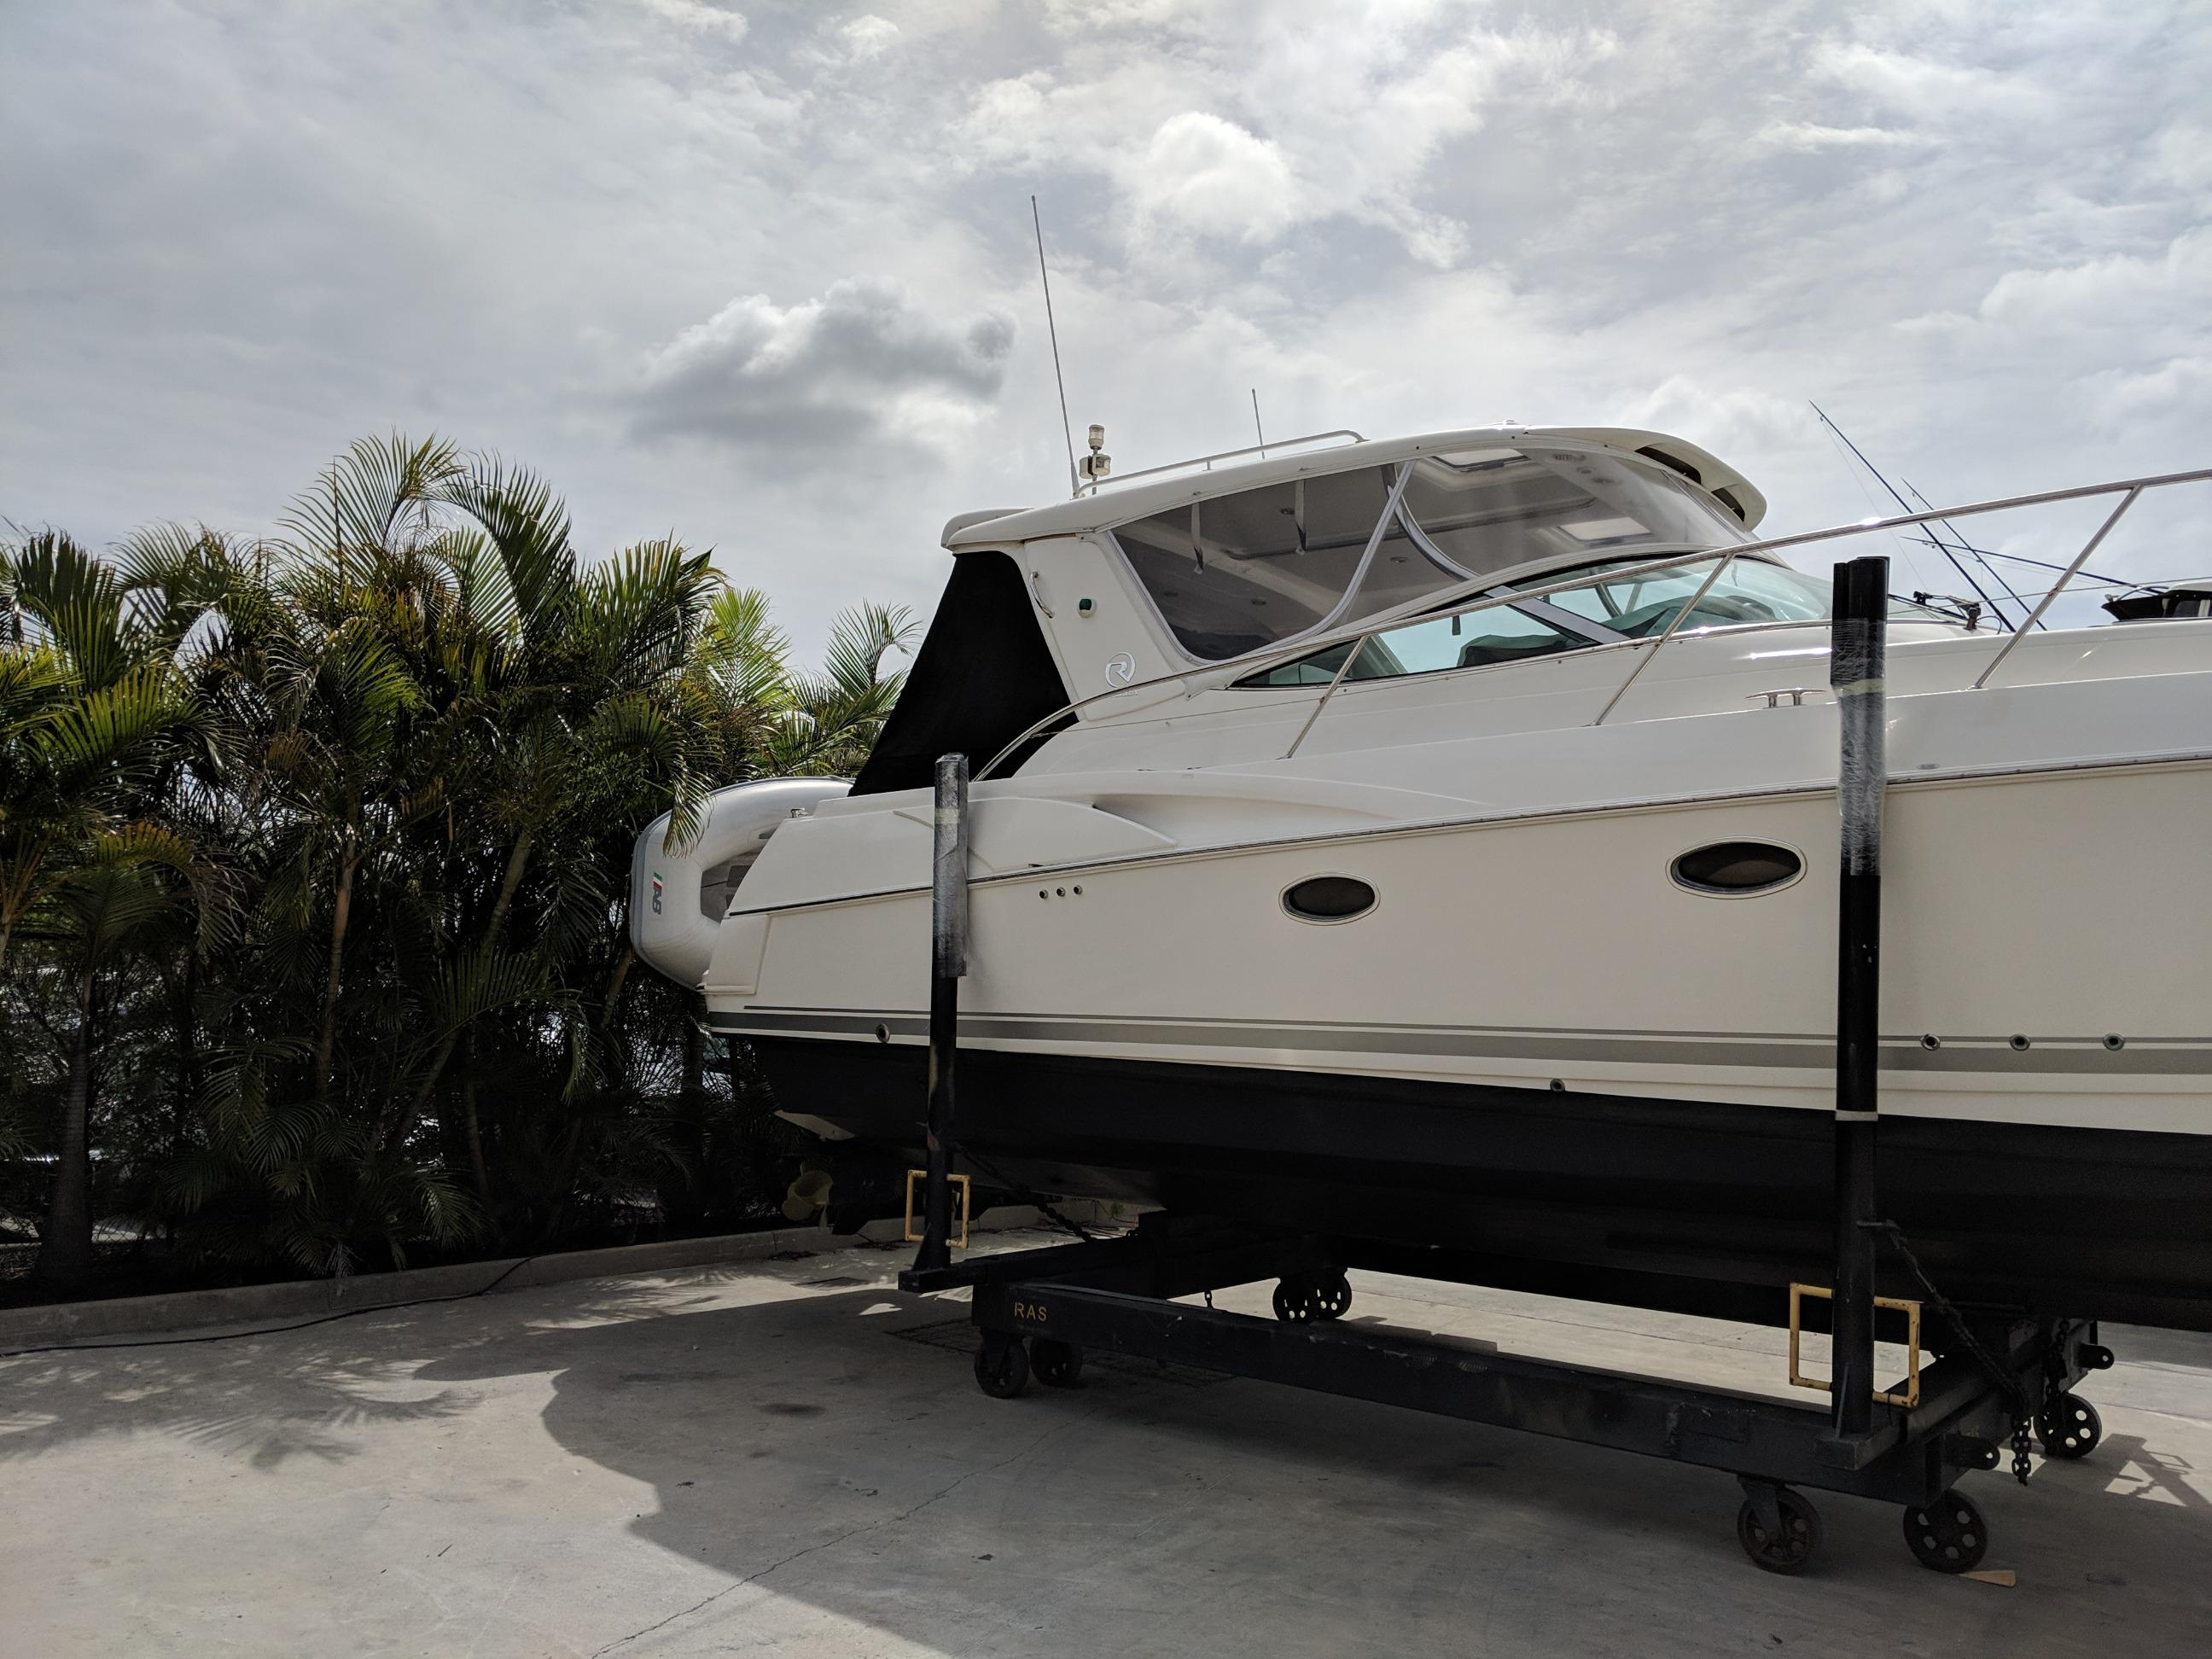 Queensland Canvas & Marine for all your marine trimming needs. Custom canvas work and more